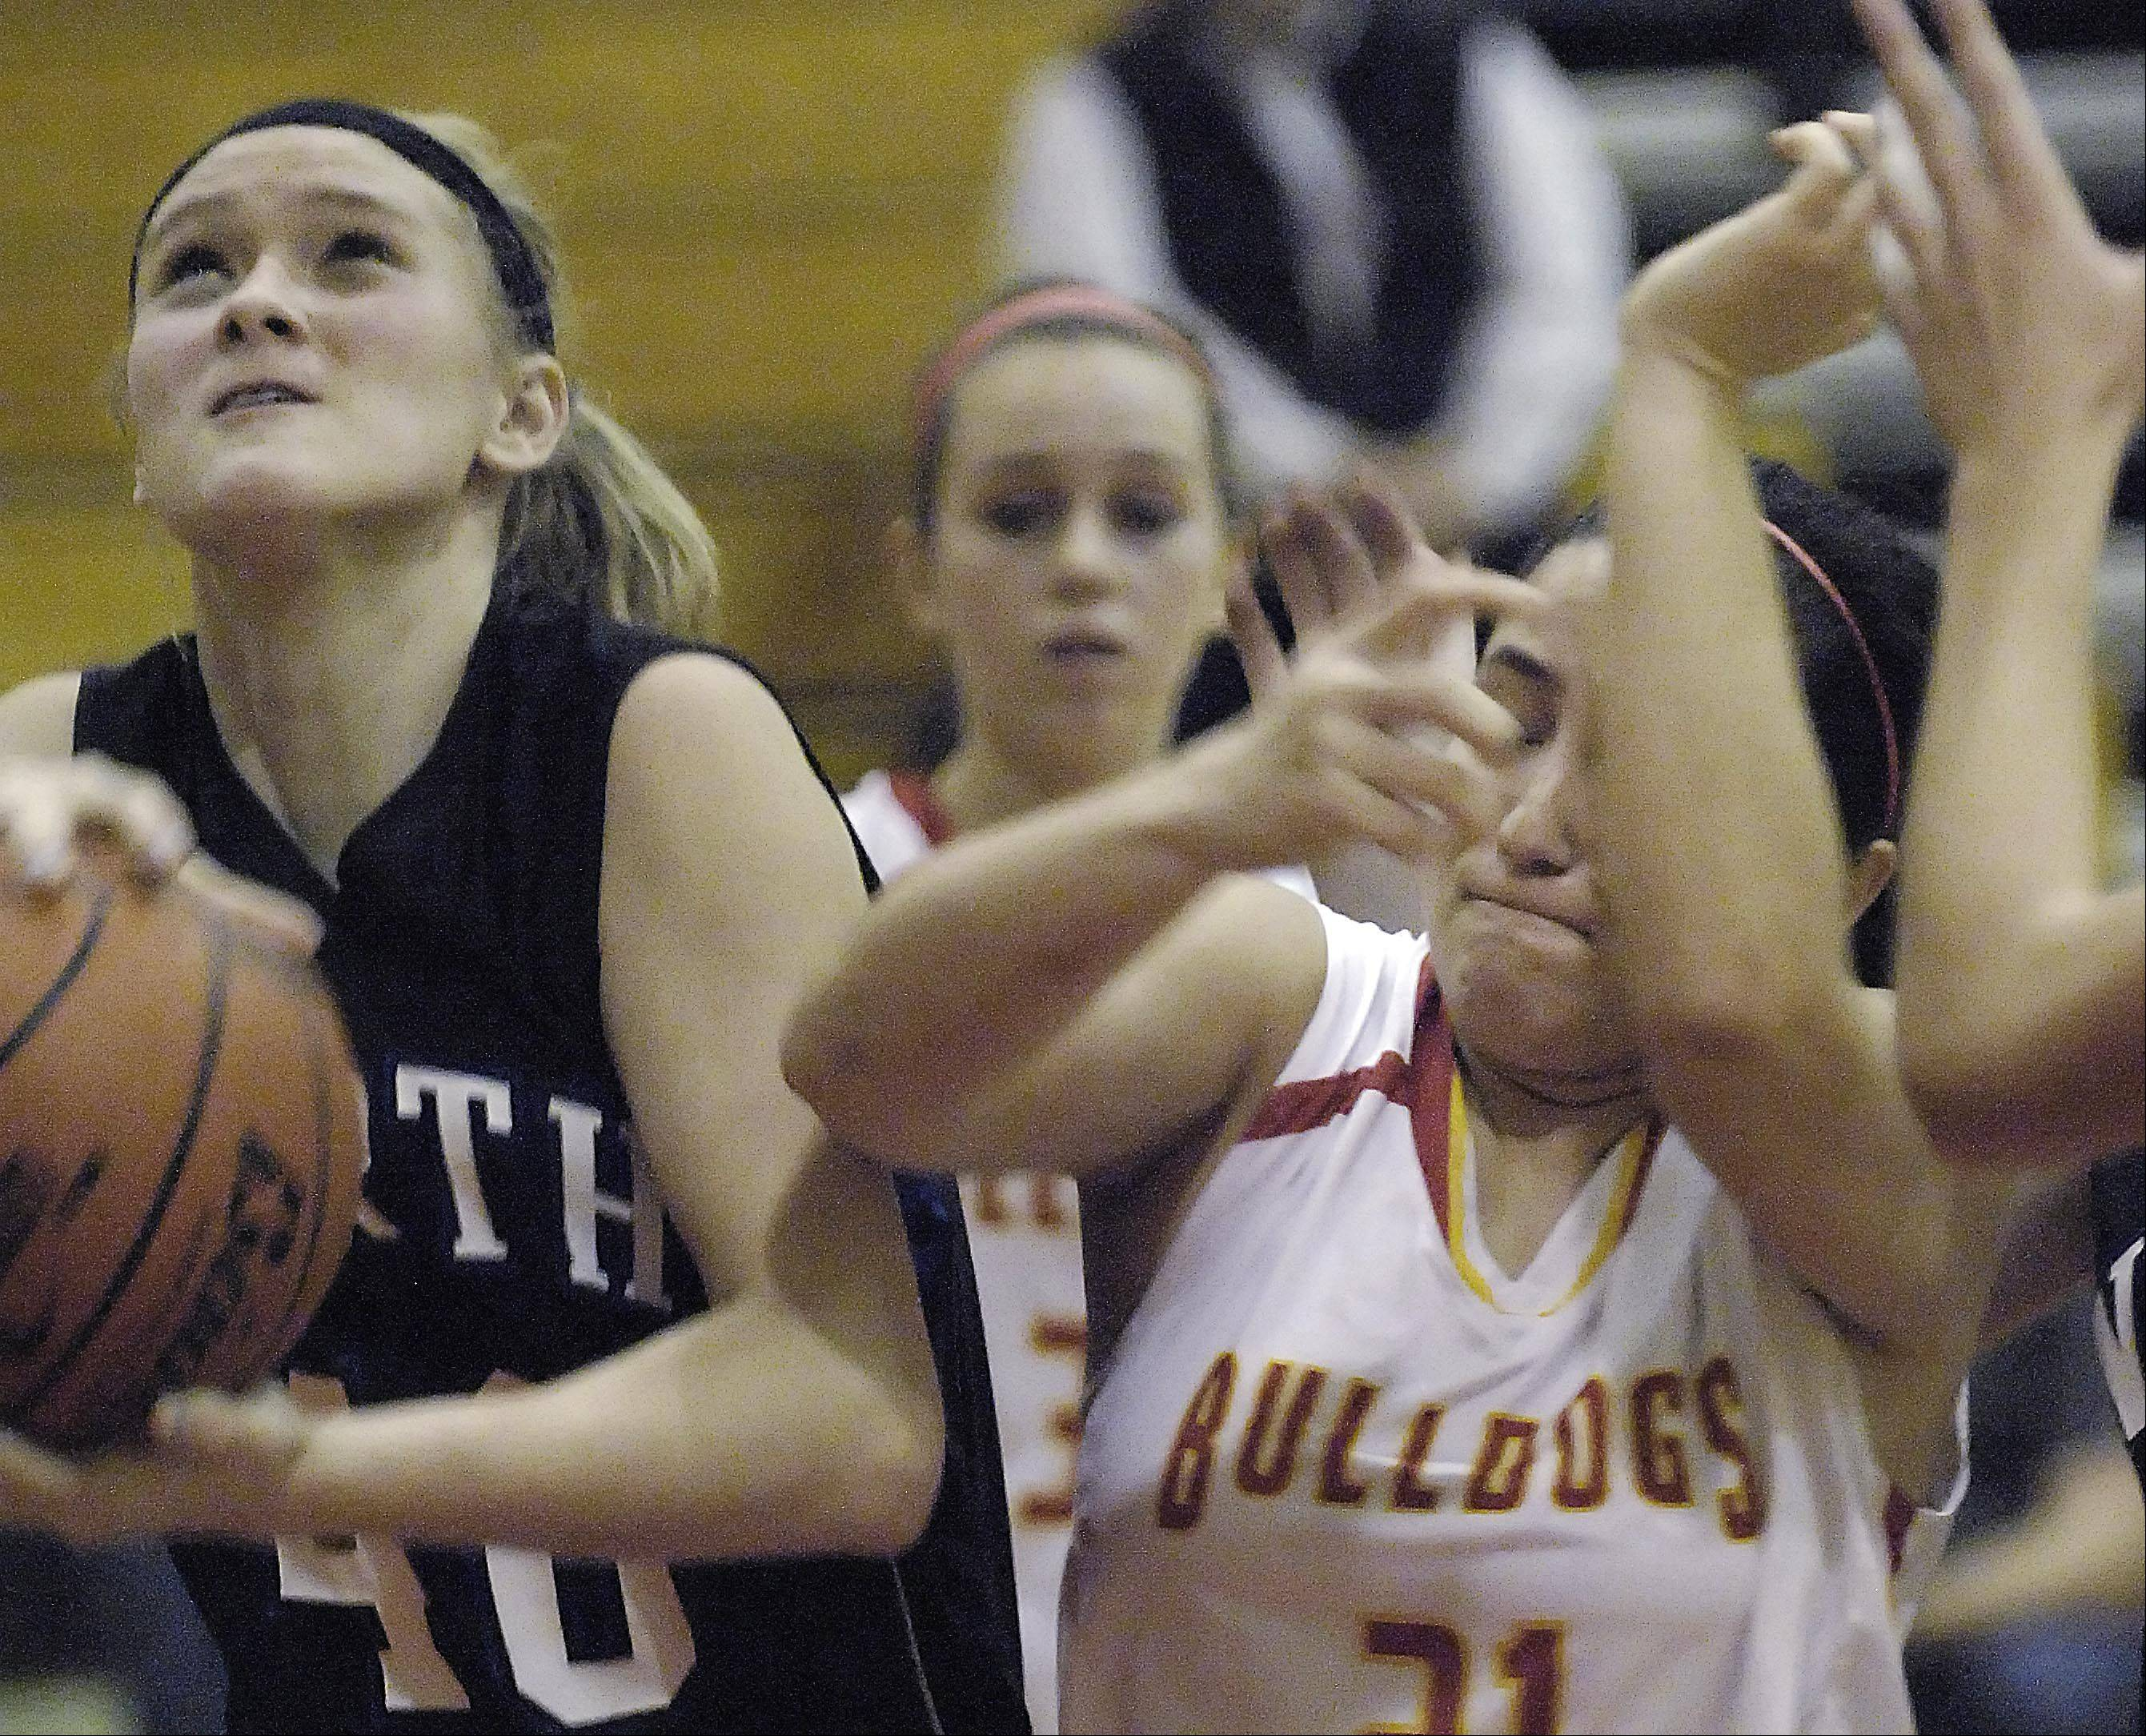 St. Charles North's Morgan Rosencrants gets the rebound against Batavia's Sami Villarreal.